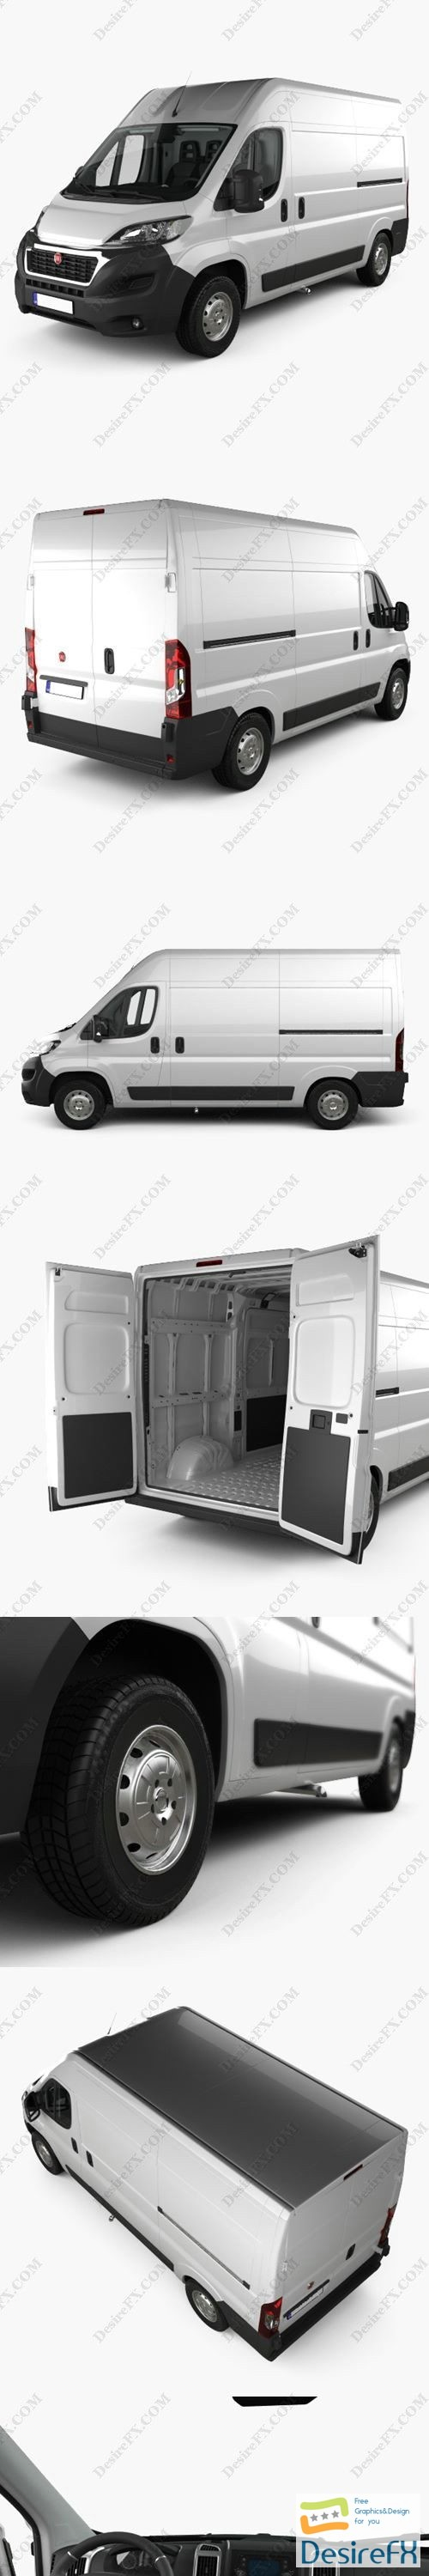 3d-models - Fiat Ducato Panel Van L2H2 with HQ interior 2014 3D Model